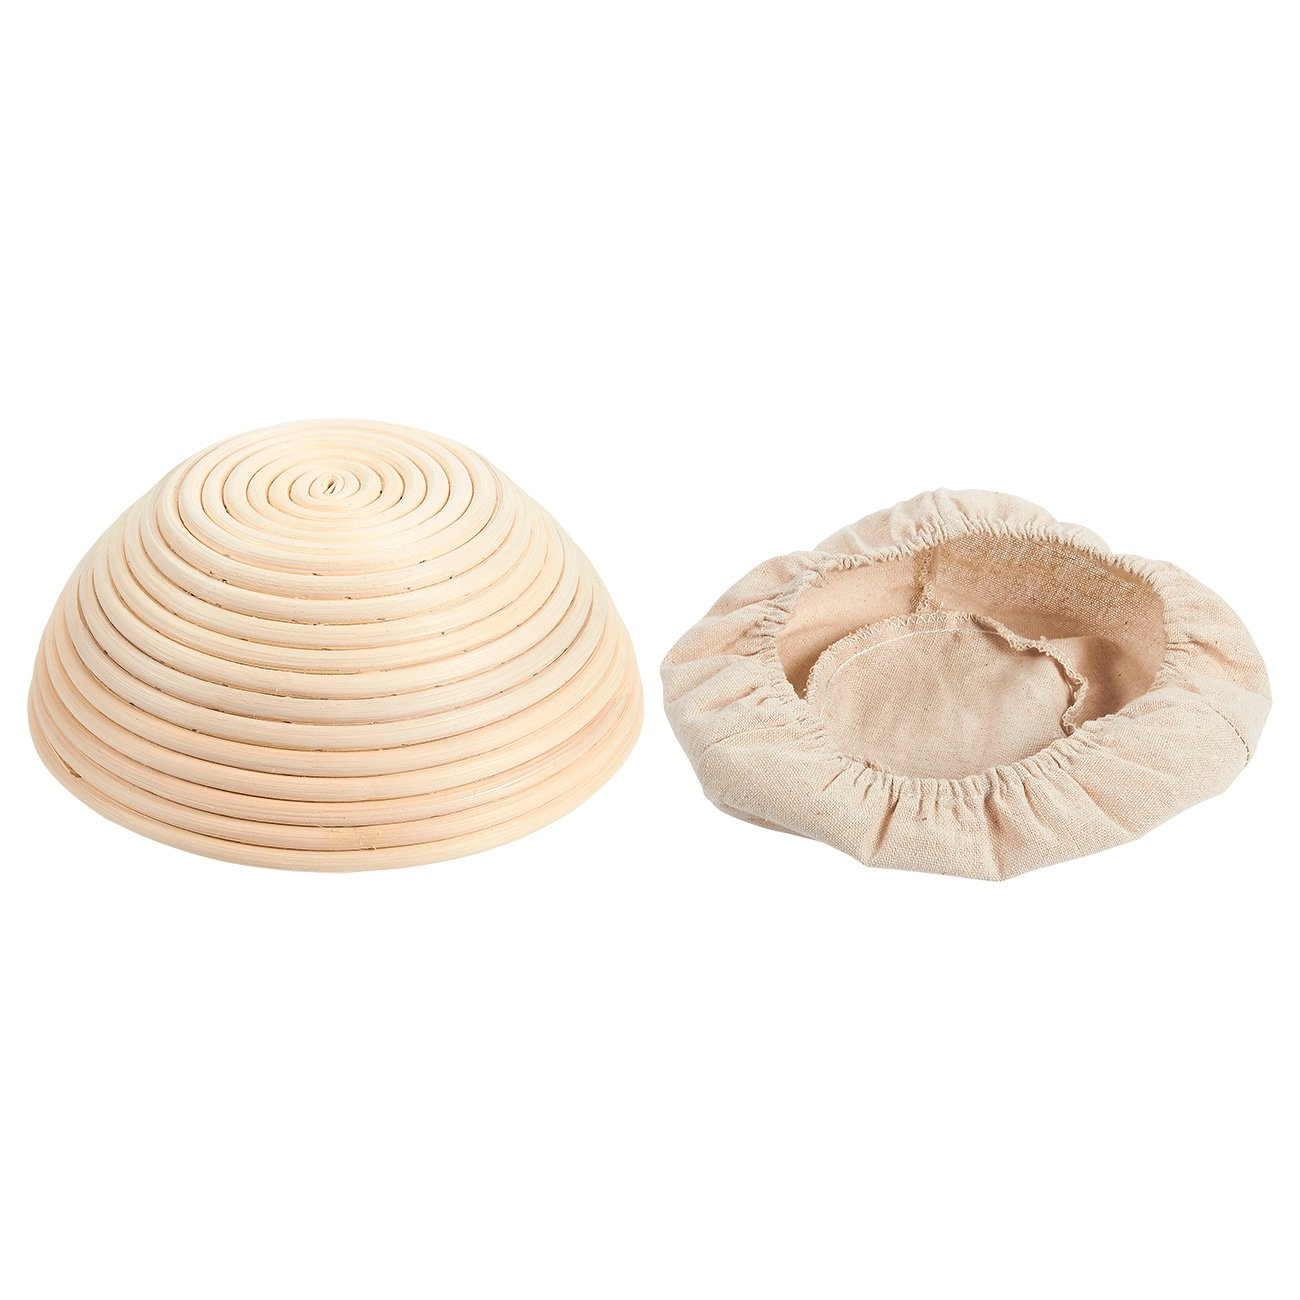 Banneton Proofing Basket Set - Baking Kit Including Rattan Basket, Cotton Liner Cloth, Dough Scraper and 8 Different Xmas Themed Stencils - Perfect for Artisan Bread Making Juvale